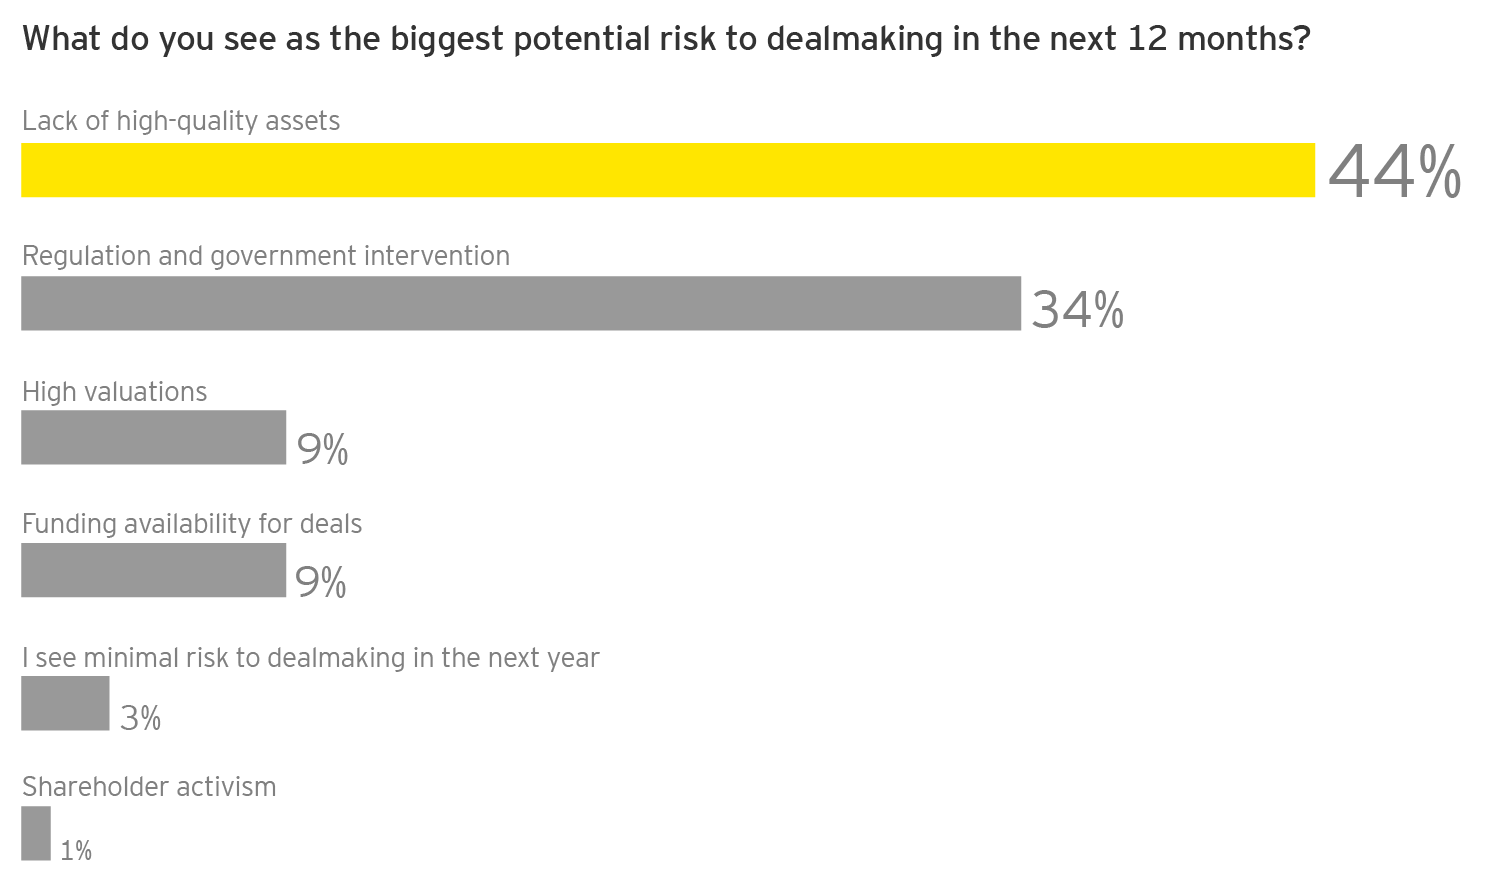 EY - Q: What do you see as the biggest potential risk to dealmaking in the next 12 months?